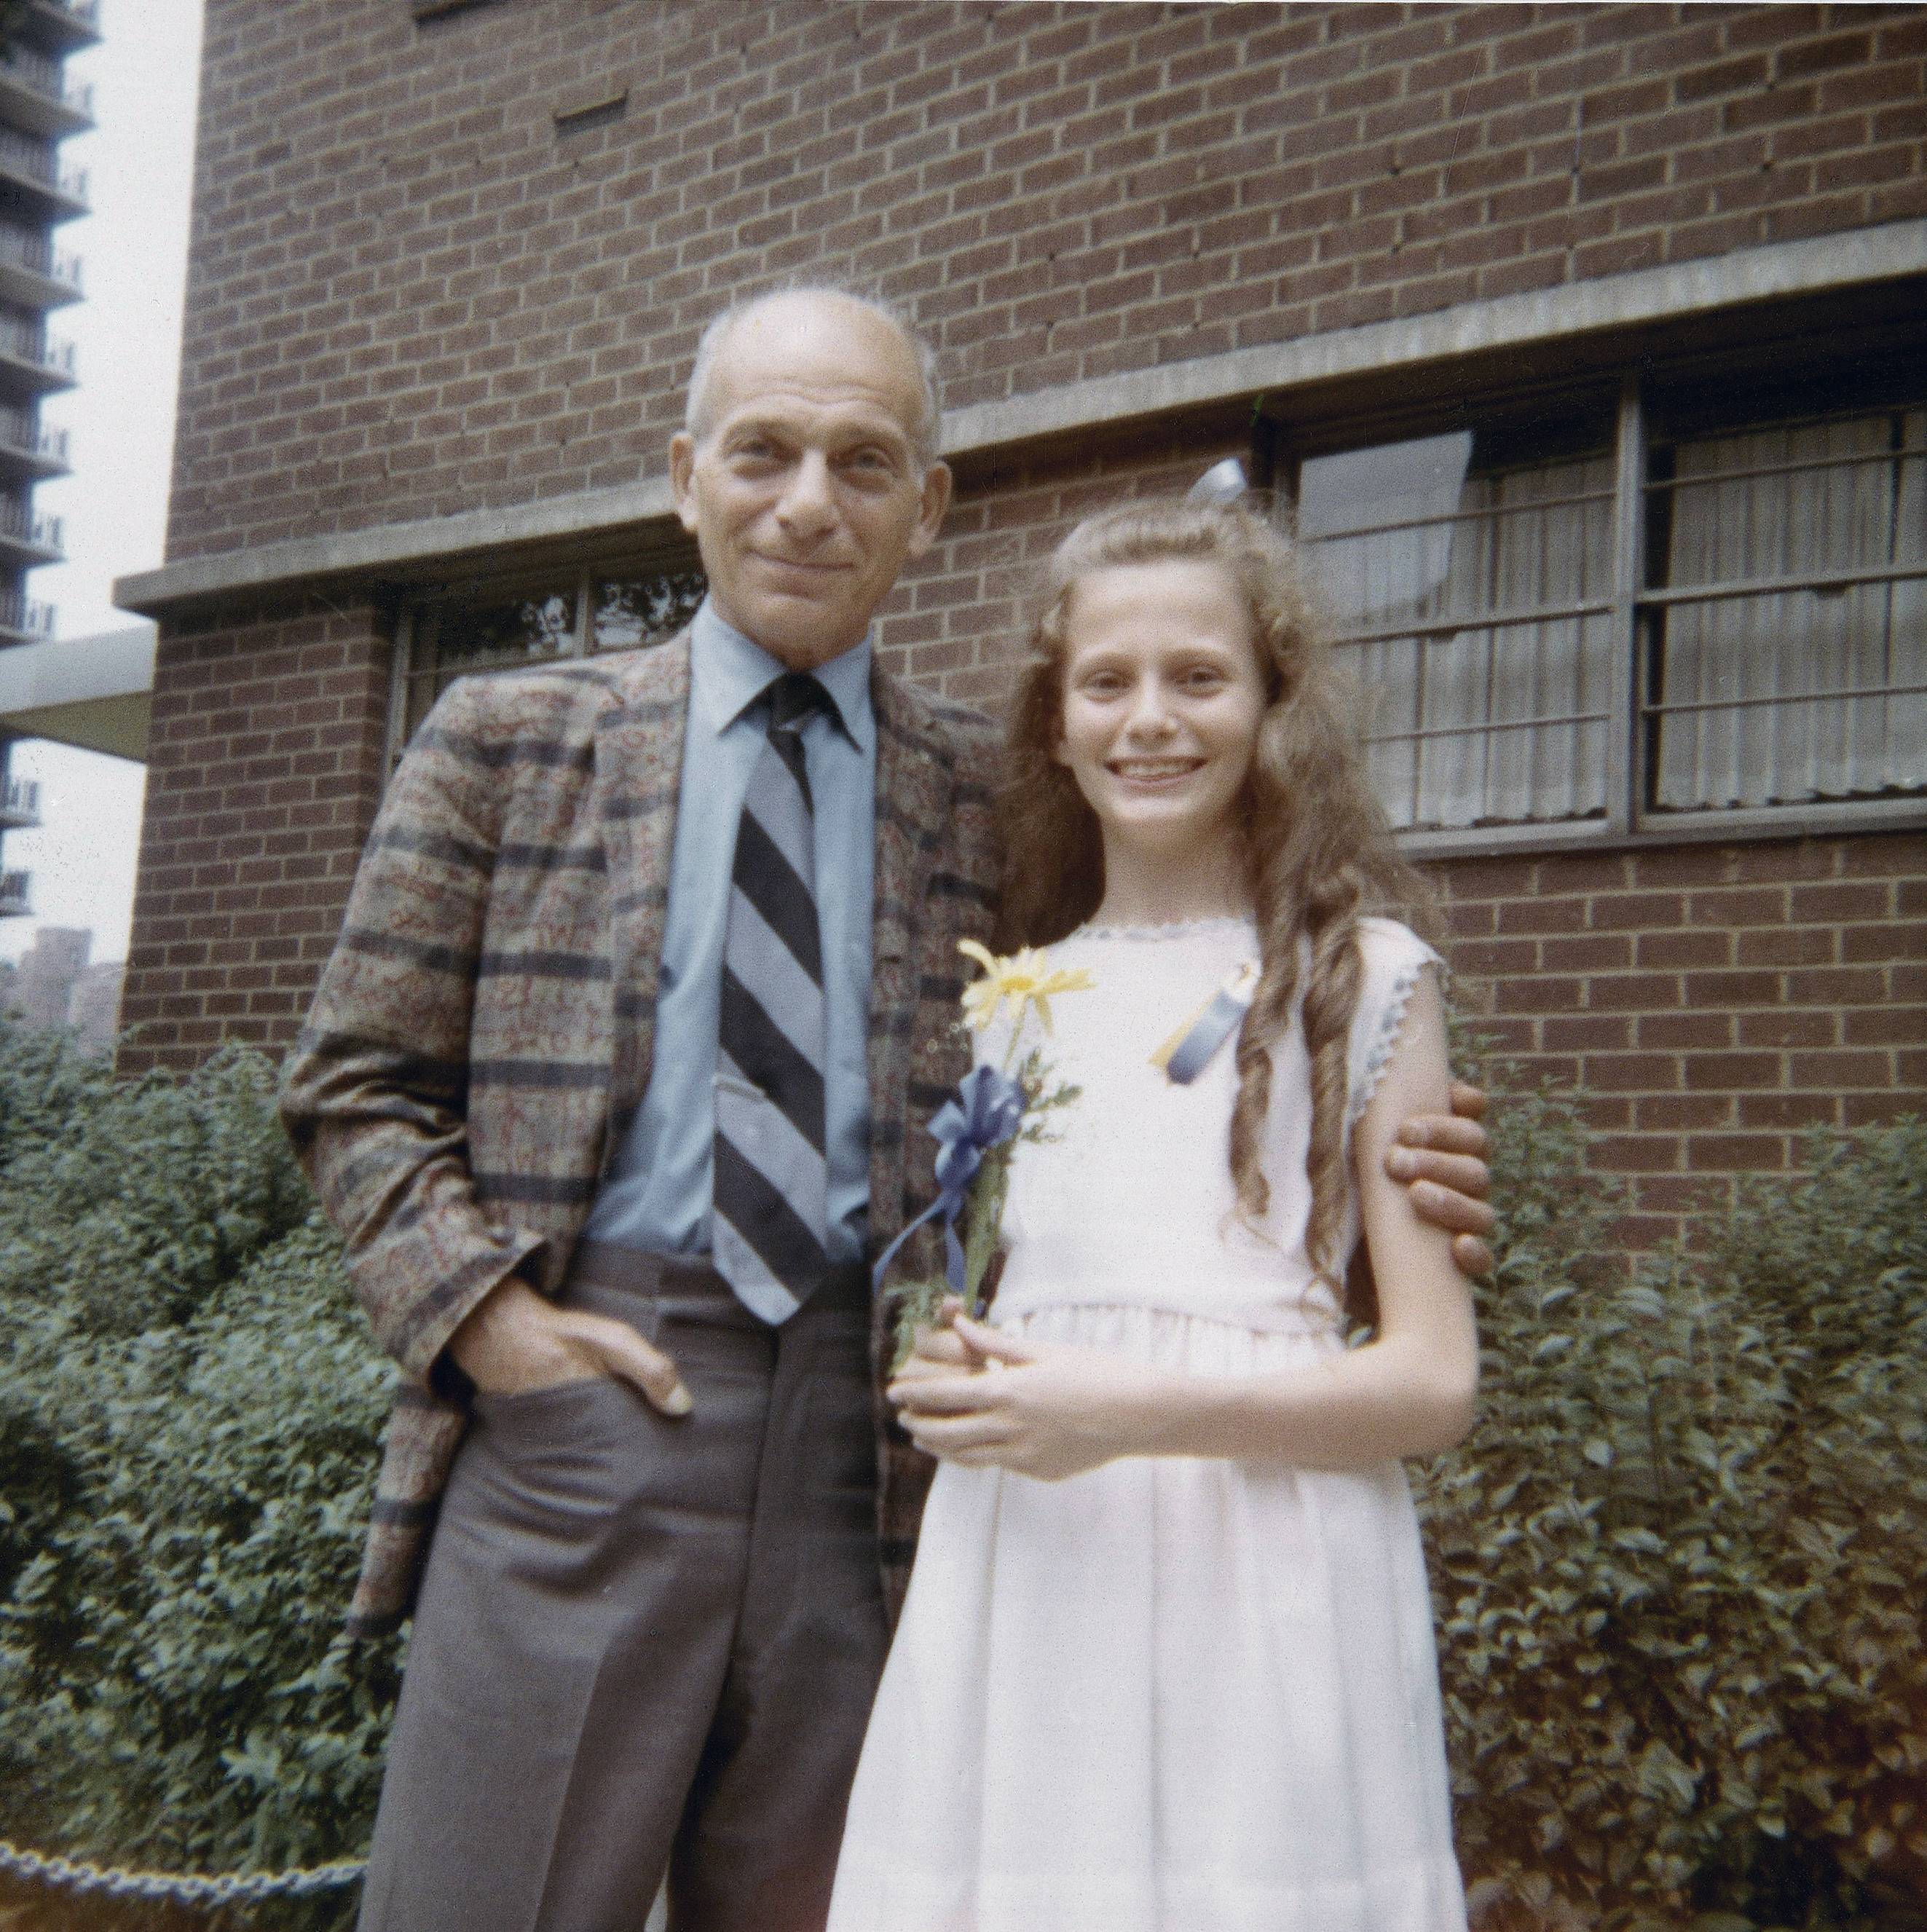 Beth J. Harpaz after her graduation from elementary school in New York with her father, David Jackendoff in June 1971.